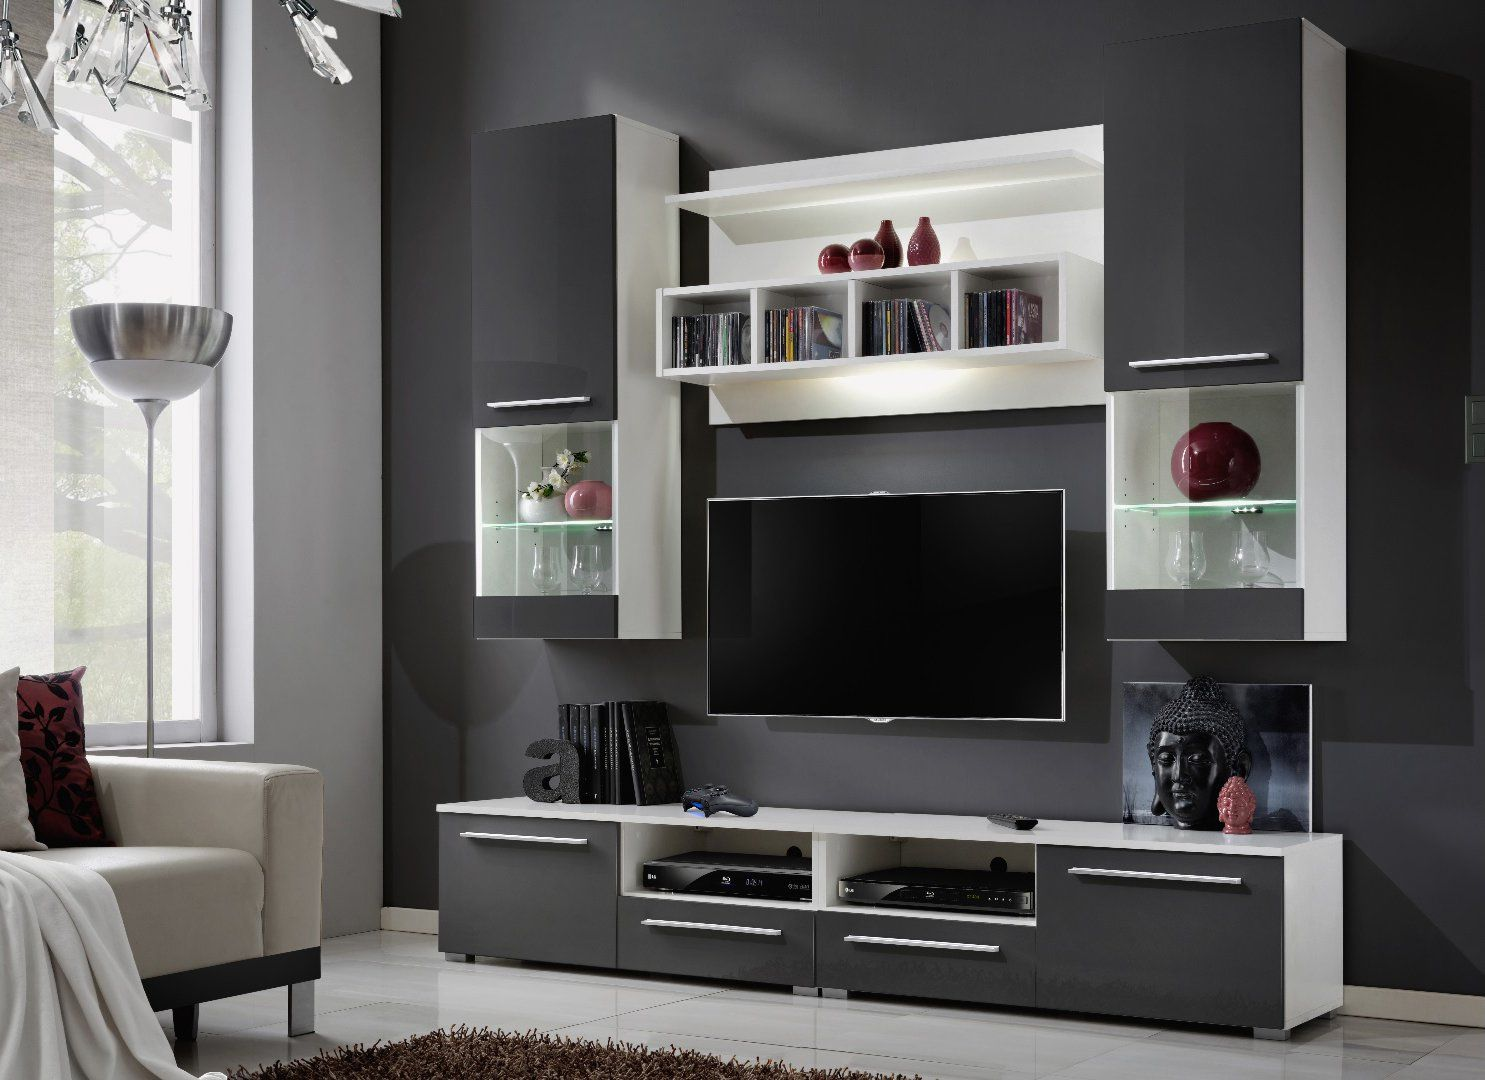 Meuble Tv Mural Noir Et Blanc Disign S - R Sultat De Recherche D Images Pour Combinaison Tv Rangement [mjhdah]https://www.comforium.com/media/catalog/product/cache/2/image/1200x/040ec09b1e35df139433887a97daa66f/_/1/_1_-franco_-_white_black/ensemble-meuble-tv-design-coloris-noir-et-blanc-15814-32.jpg